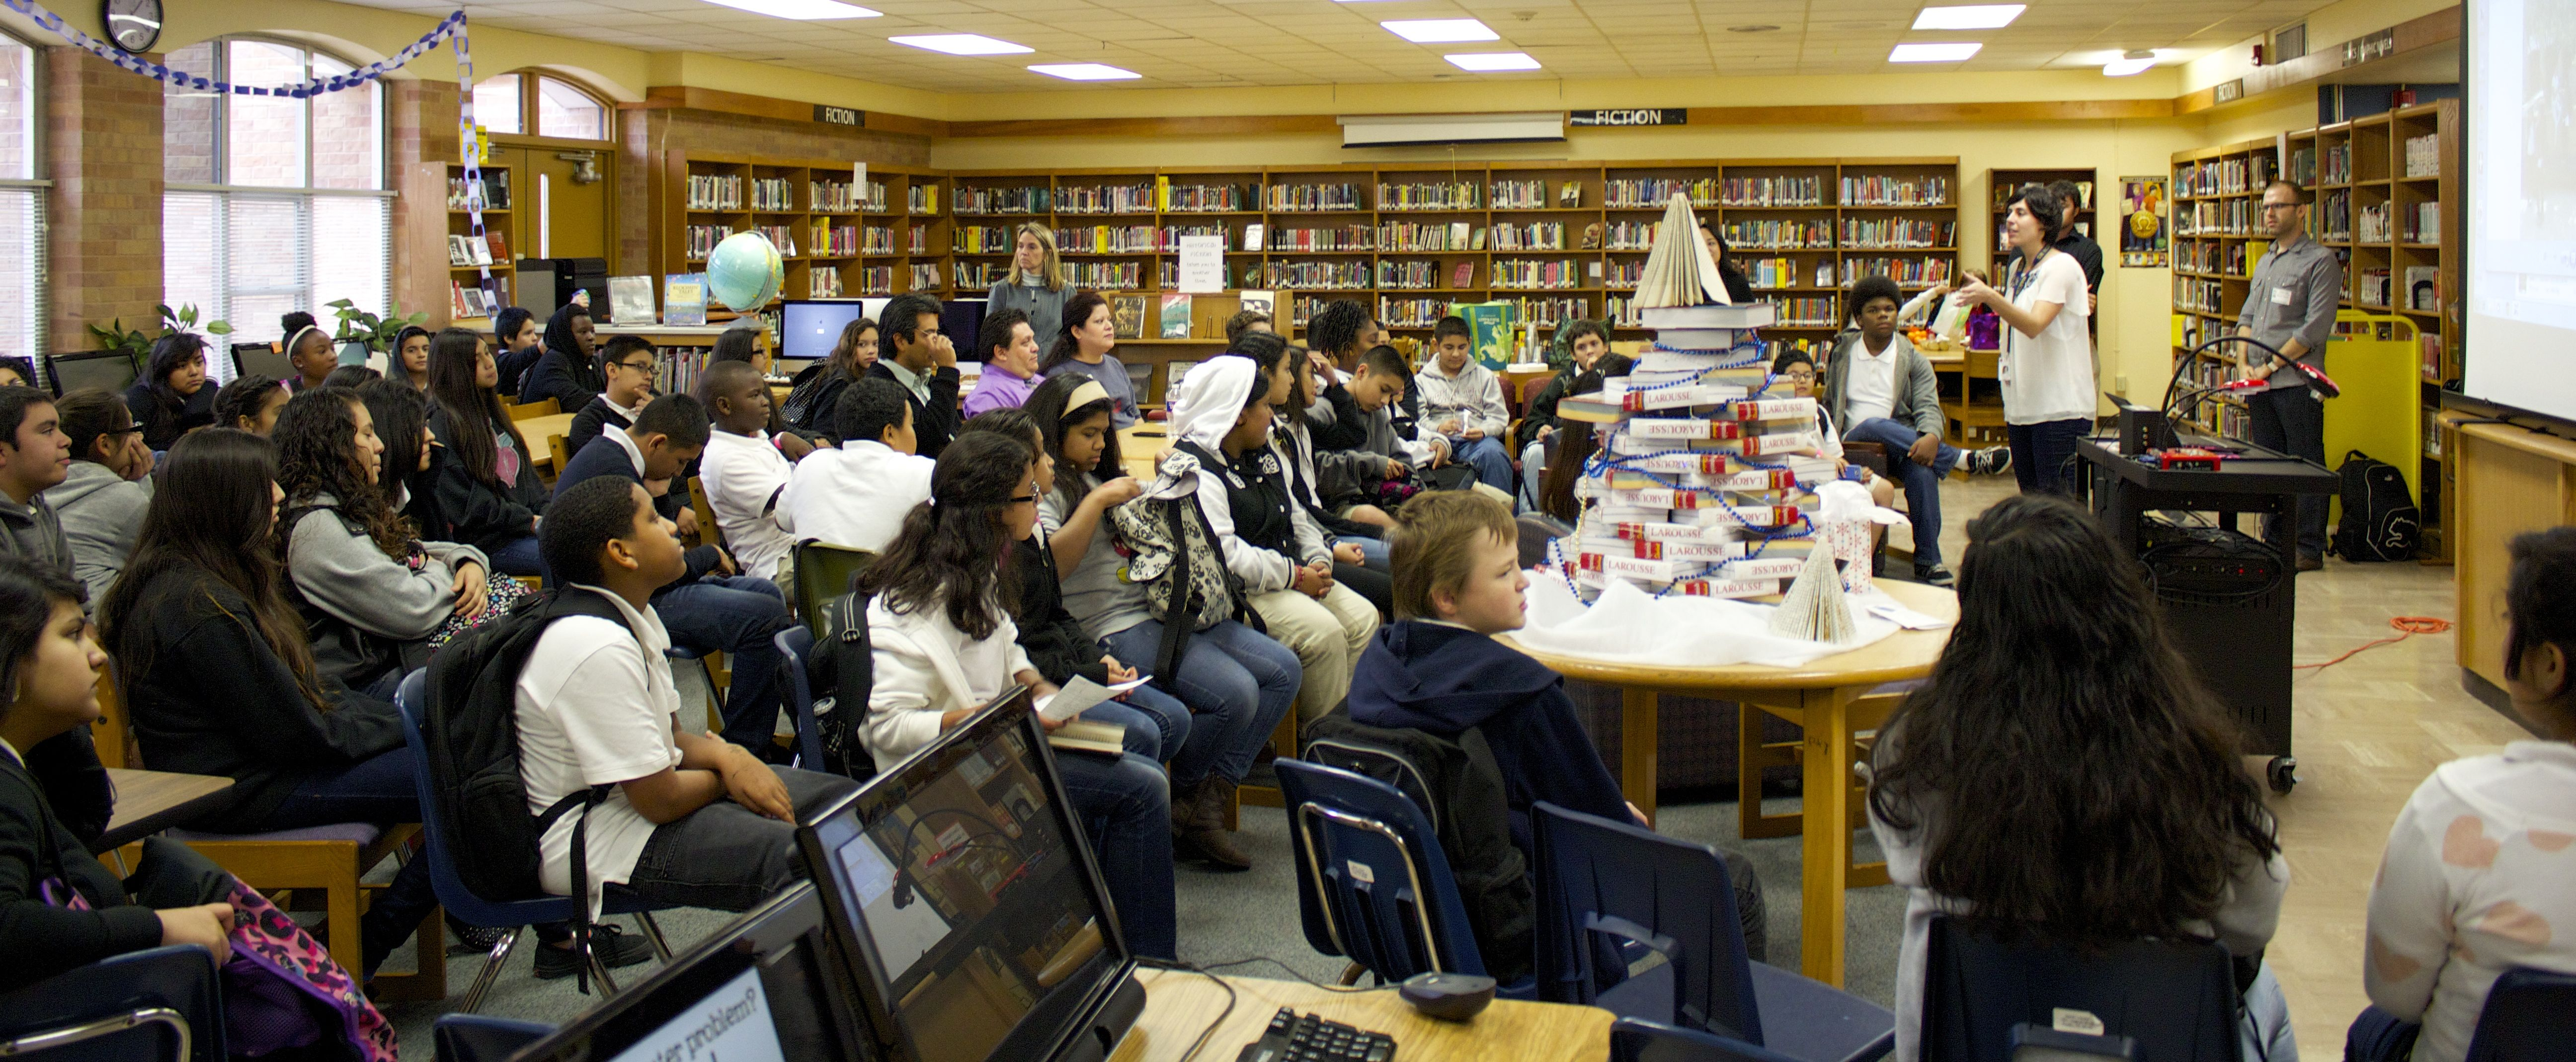 Caption: Ms. Karydas introduces Stories at Martin Middle School Library, Credit: Michelle Mejia